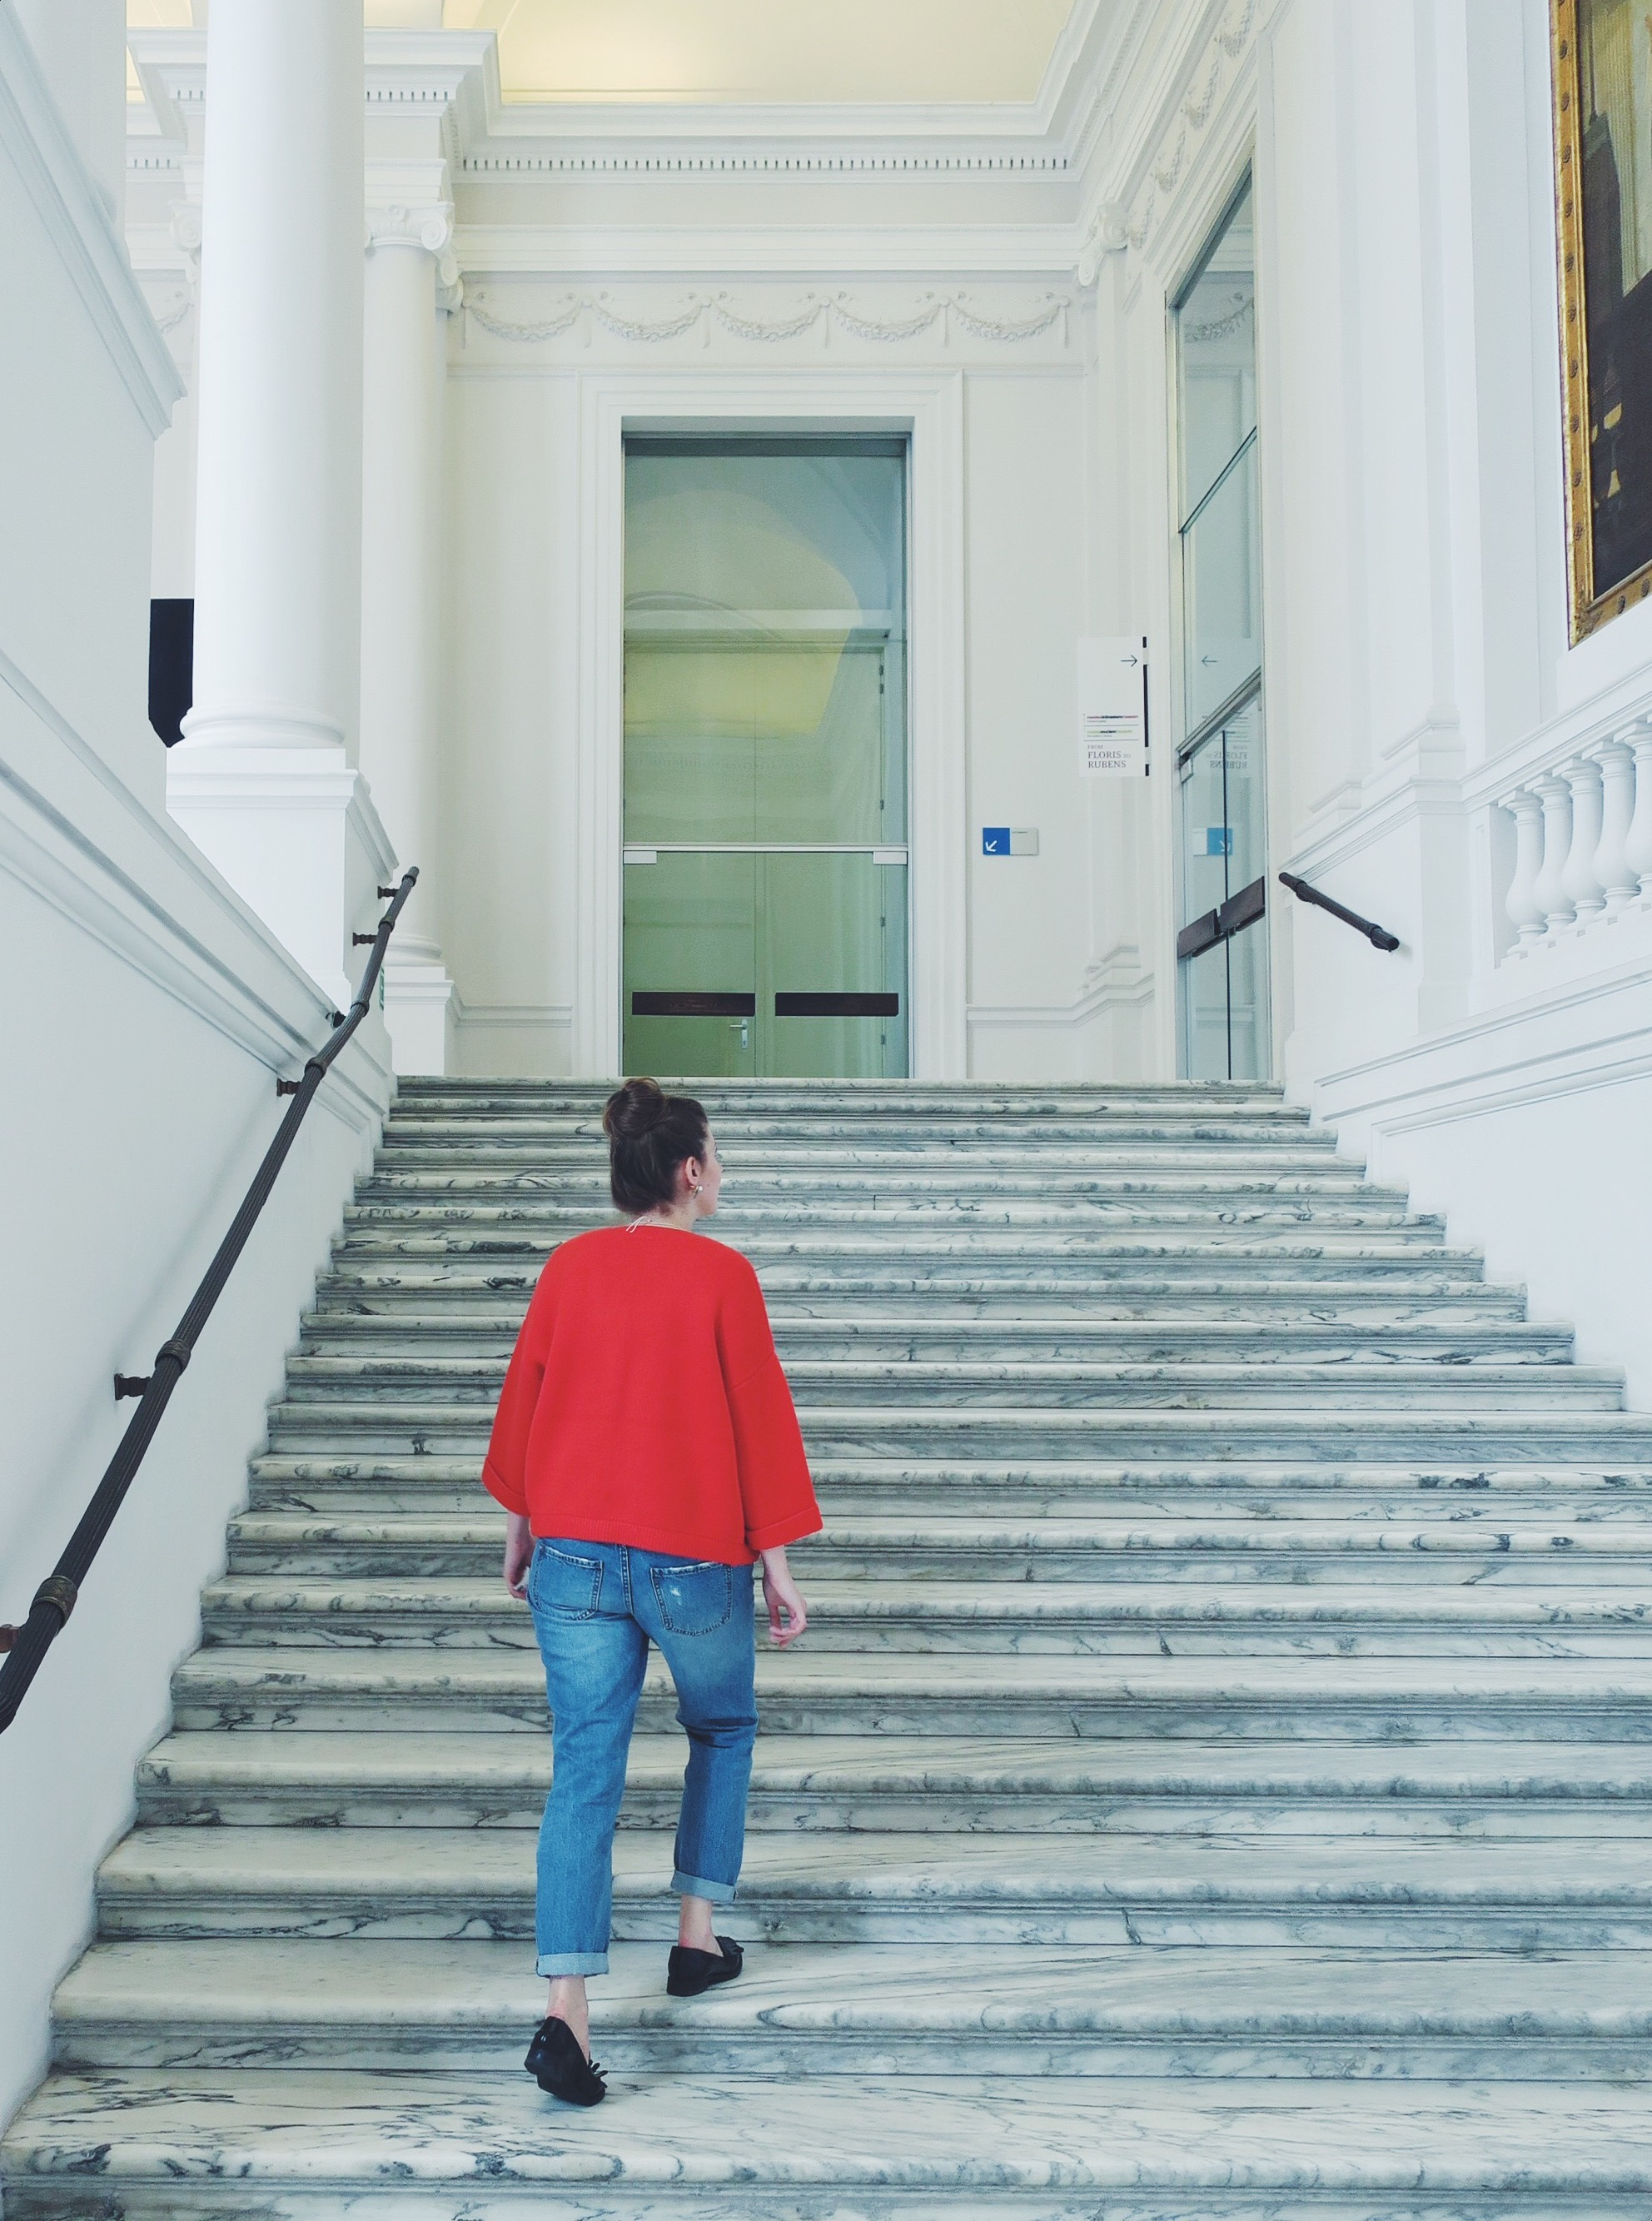 Marble staircase to the Oldmasters Museum